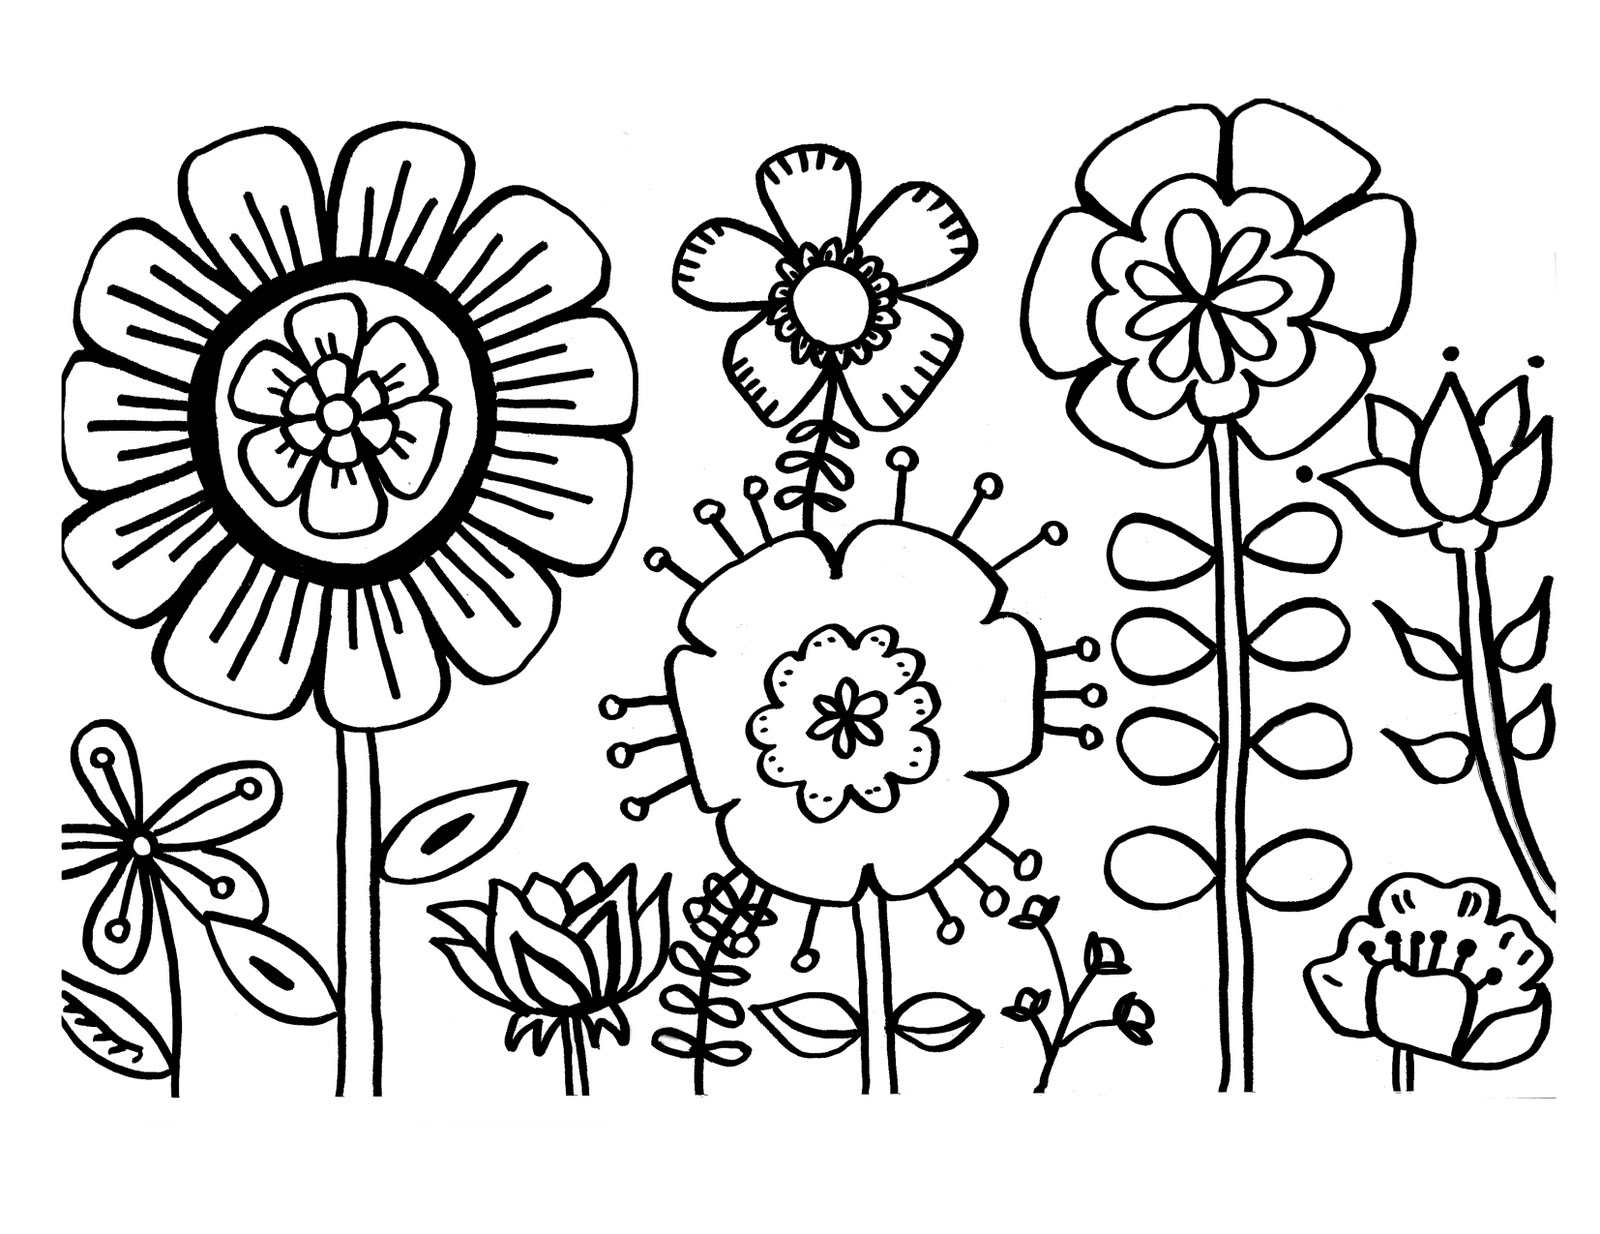 Flower Baskets Coloring Page